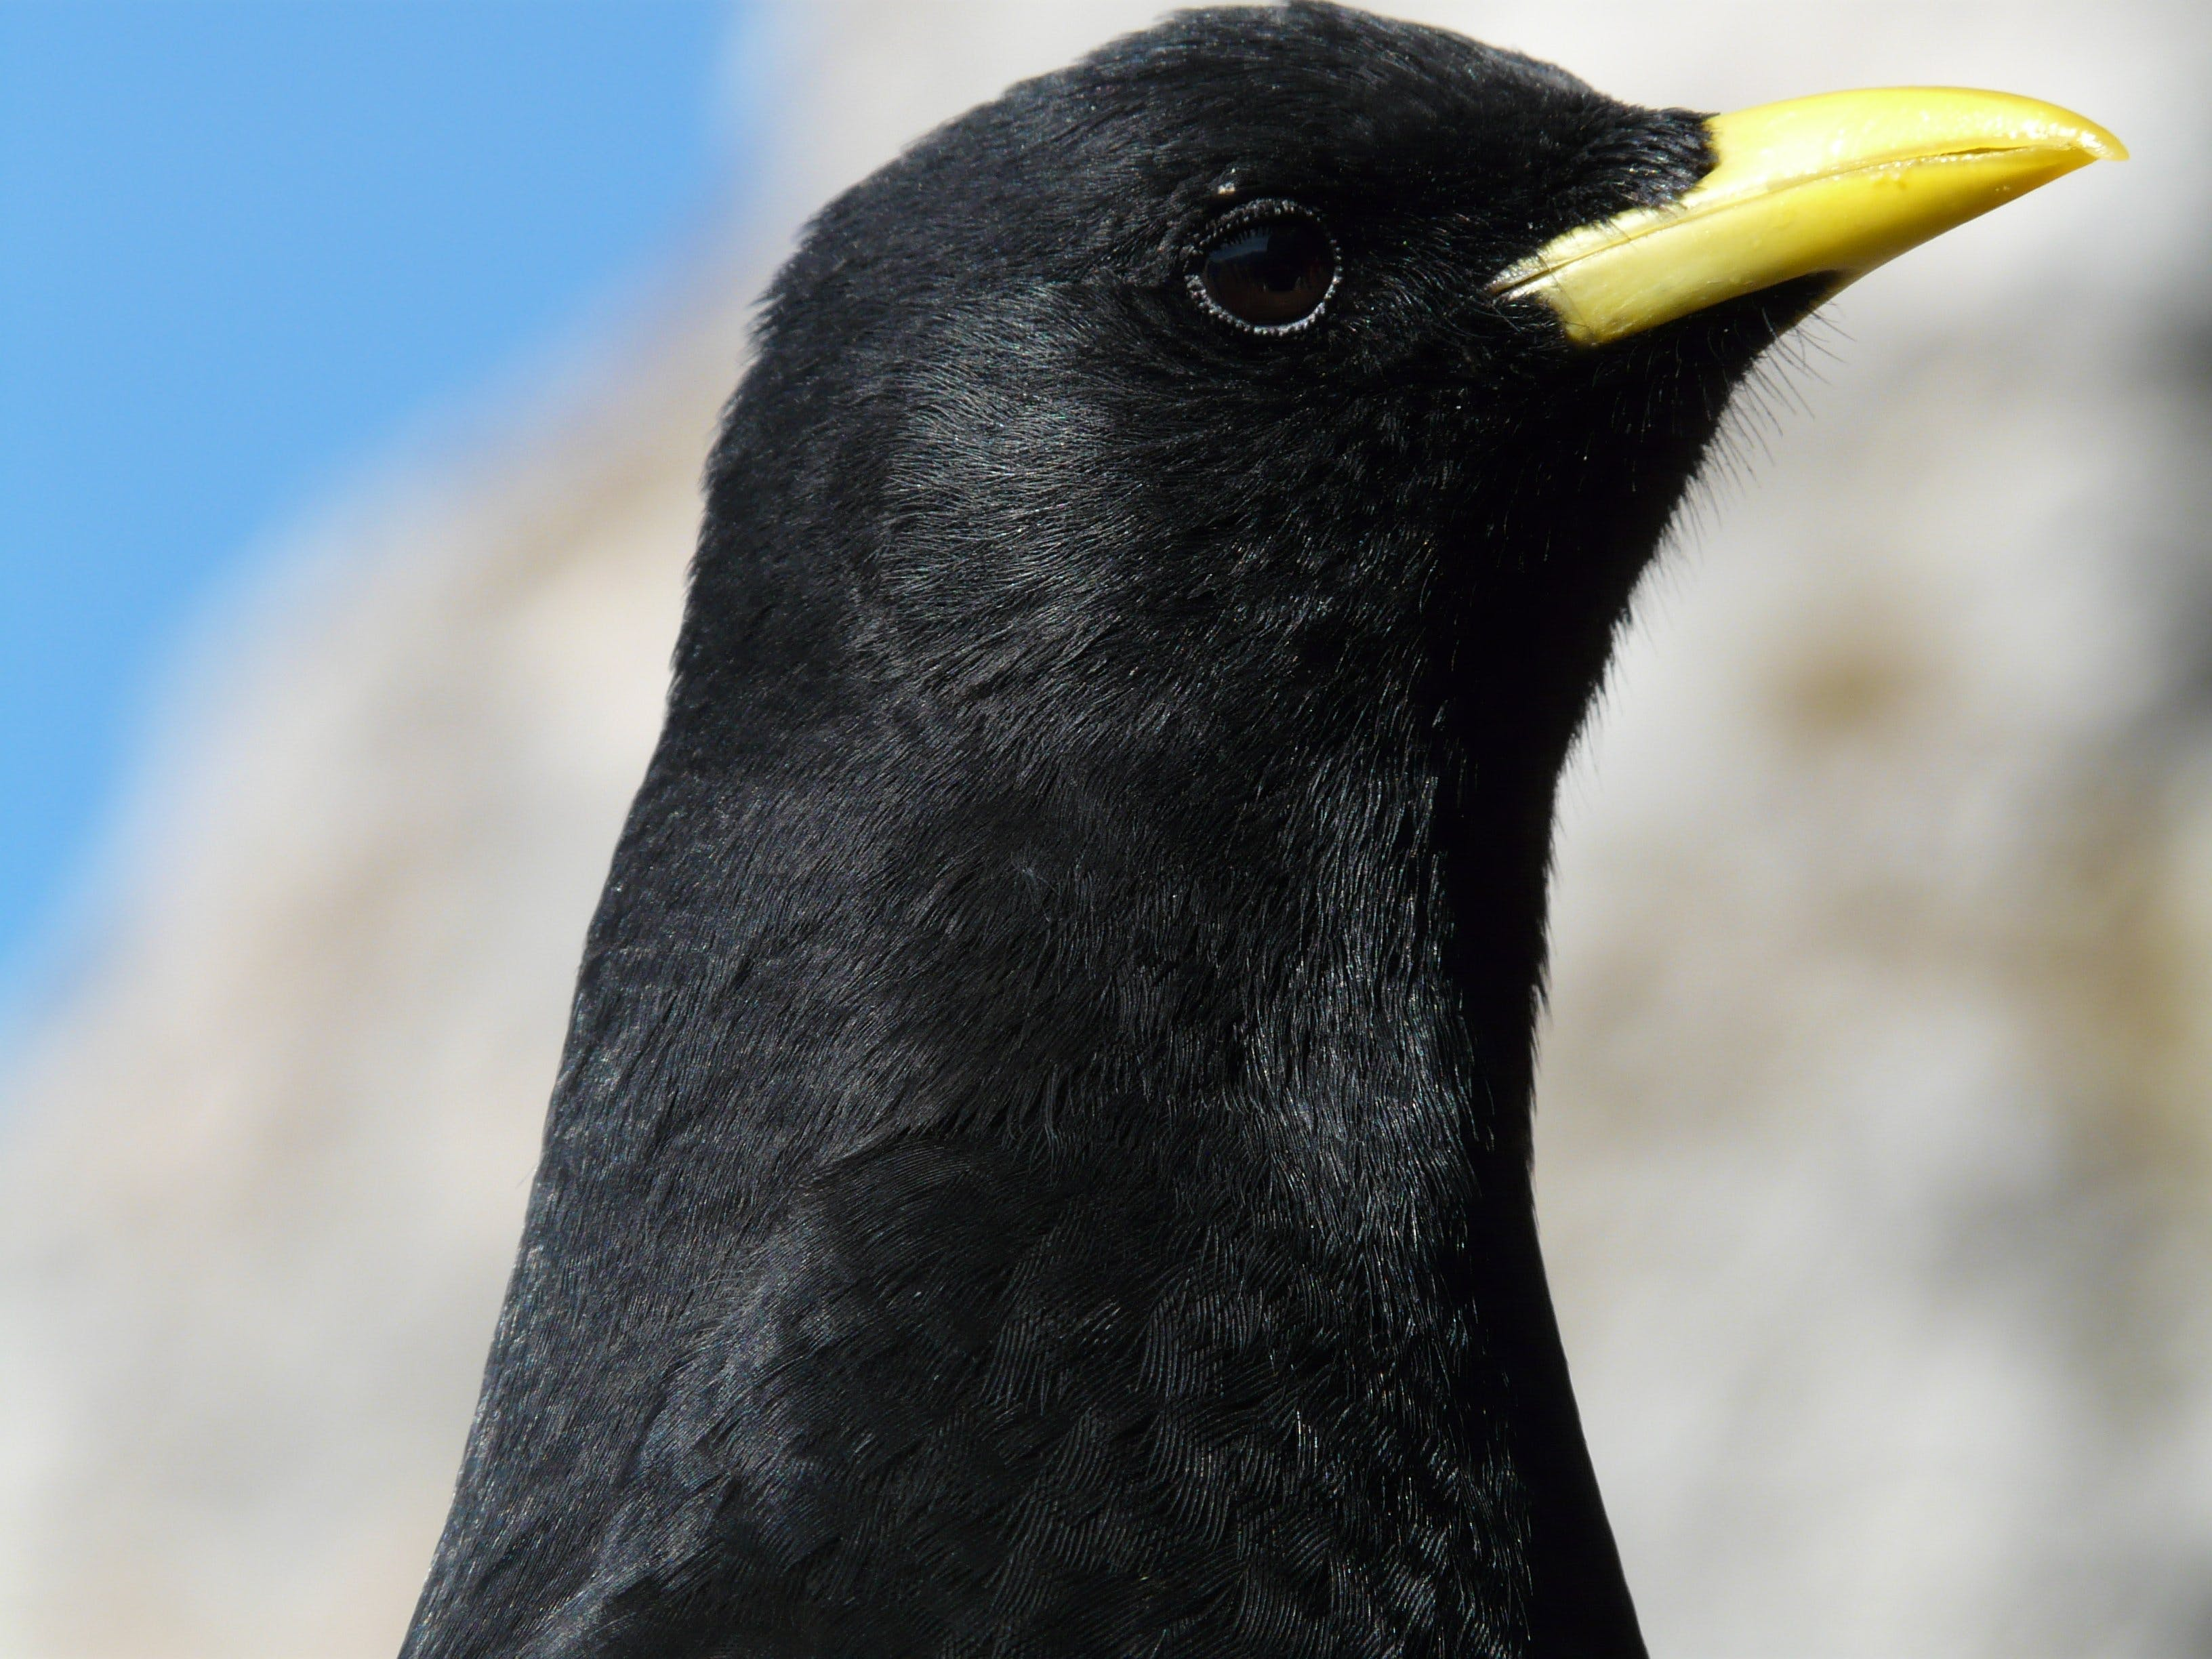 Focus Photography of Black Bird